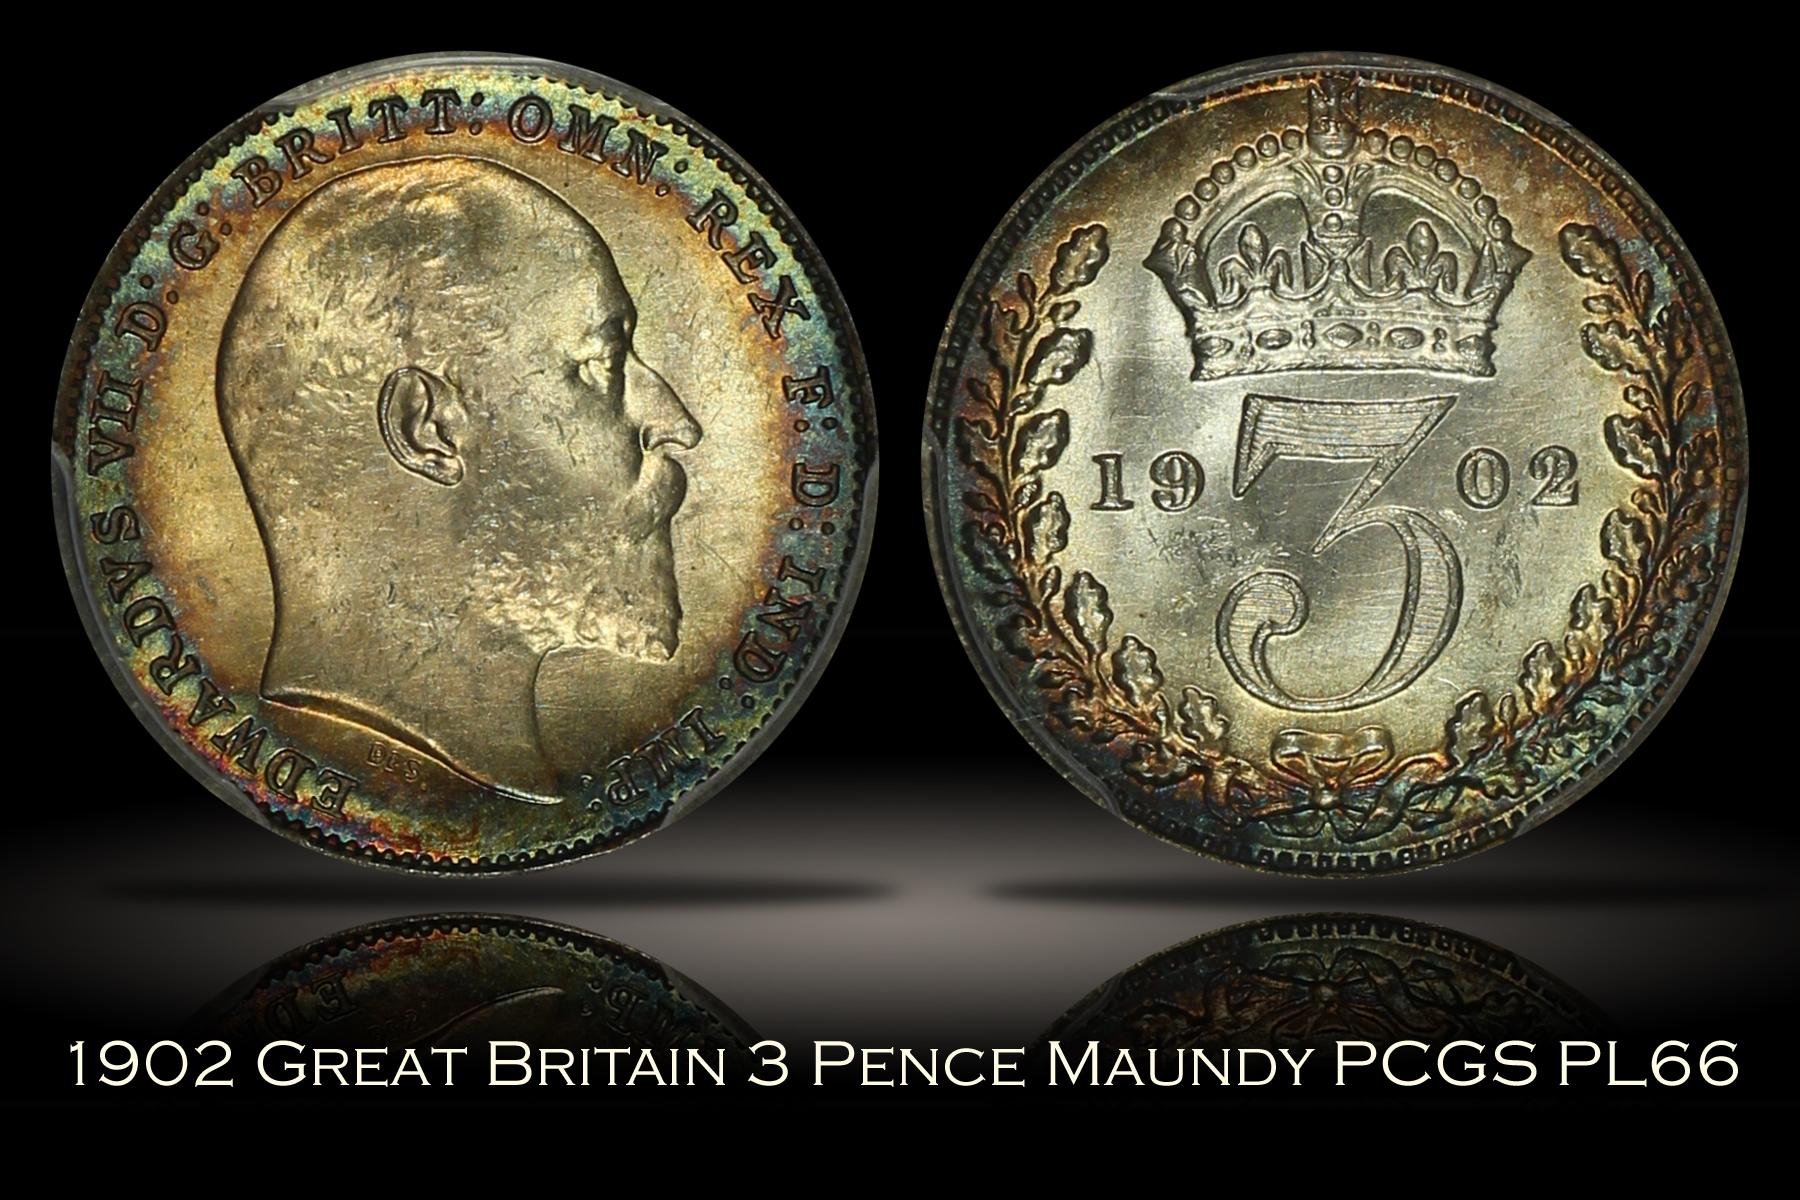 1902 Great Britain 3 Pence Maundy PCGS PL66